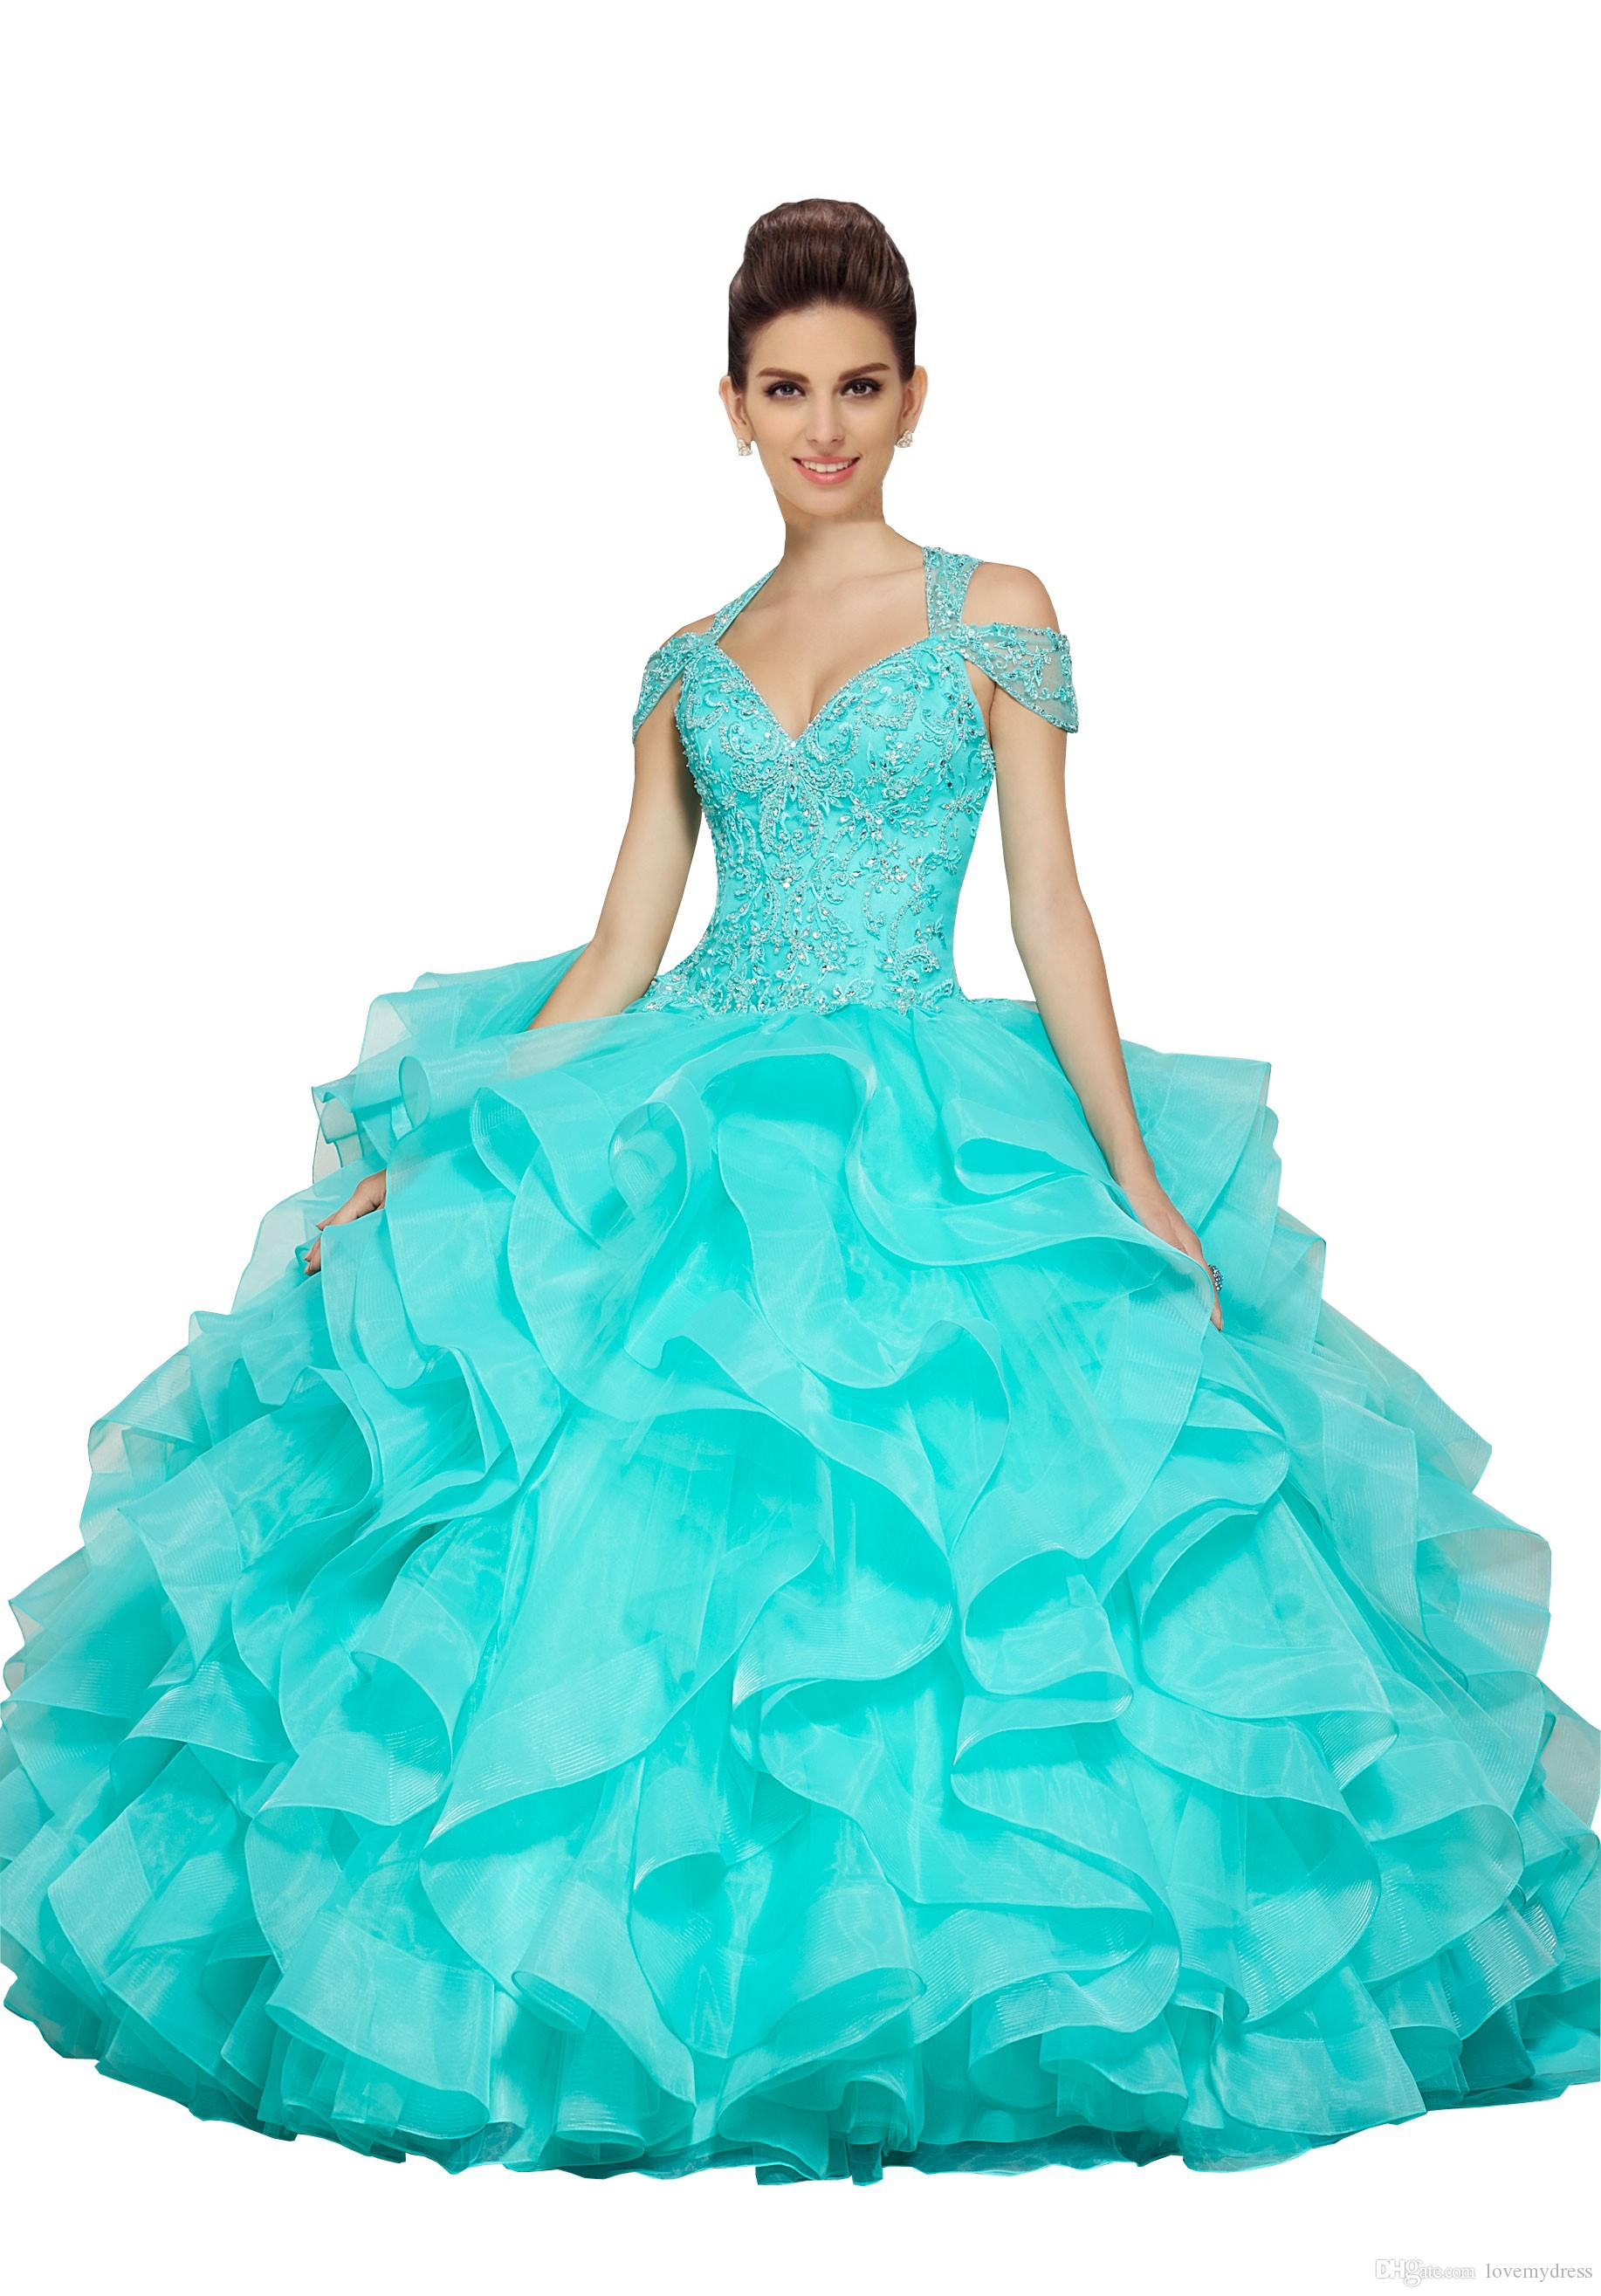 f1bad3b7c38 2019 Off The Shoulder Prom Quinceanera Dresses With Ruffles Lace  Embroidered Beaded Crystal Sequins Organza Sweet 16 Dresses For Girls Gowns  Green ...